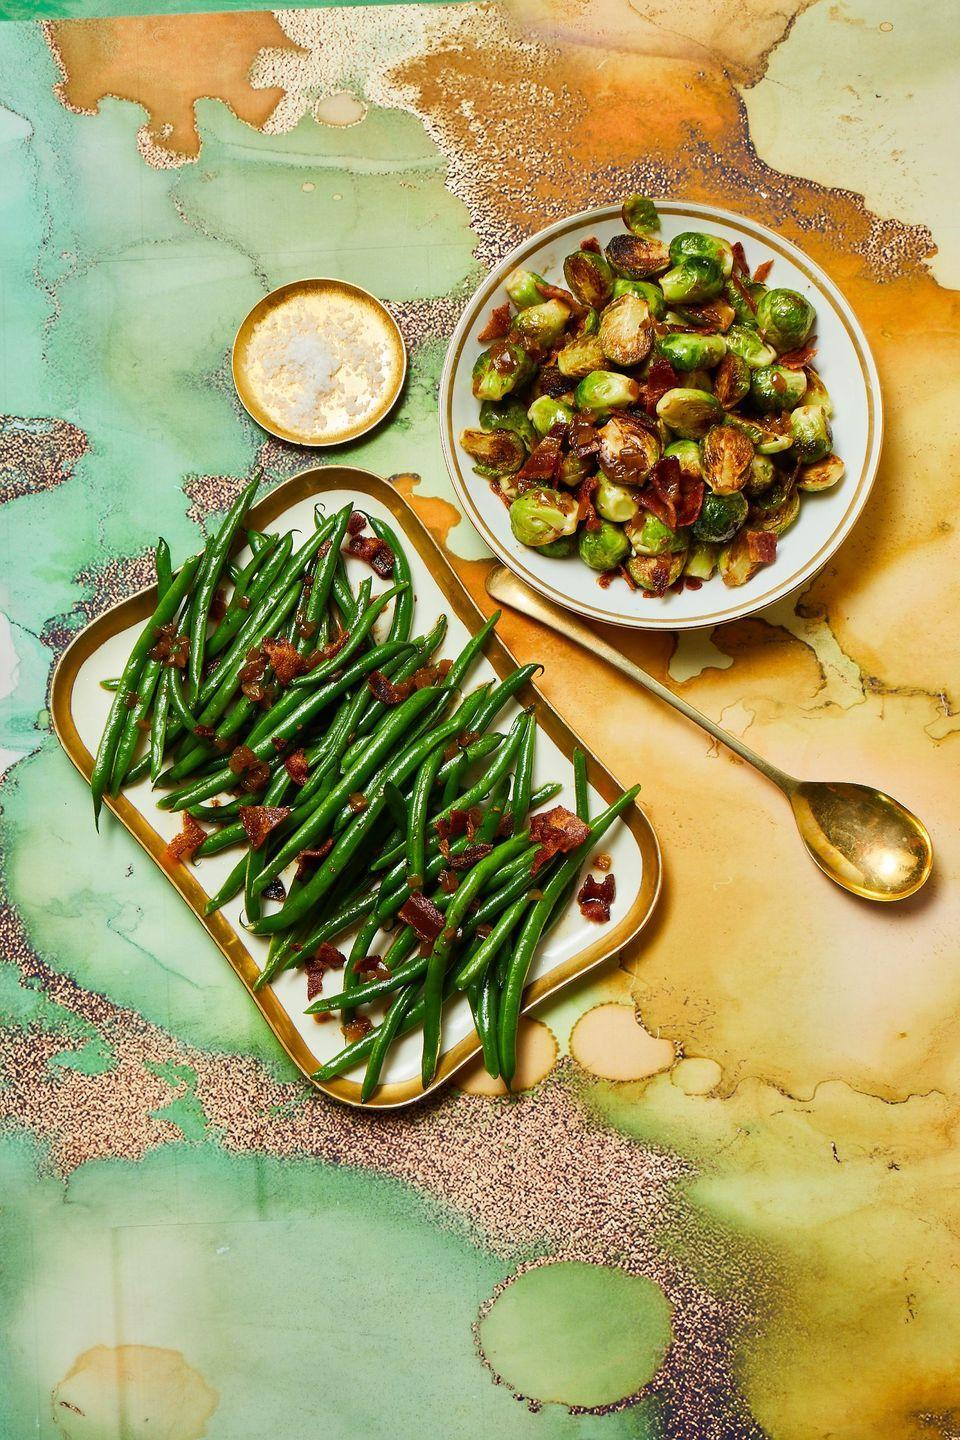 """<p>The tangy, salty-sweet bacon vinaigrette is great with simply cooked green beans, but versatile enough for a number of green veggies. </p><p><strong><em><a href=""""https://www.womansday.com/food-recipes/a34131789/blanched-green-beans-recipe/"""" rel=""""nofollow noopener"""" target=""""_blank"""" data-ylk=""""slk:Get the Blanched Green Beans recipe."""" class=""""link rapid-noclick-resp"""">Get the Blanched Green Beans recipe. </a></em></strong></p>"""